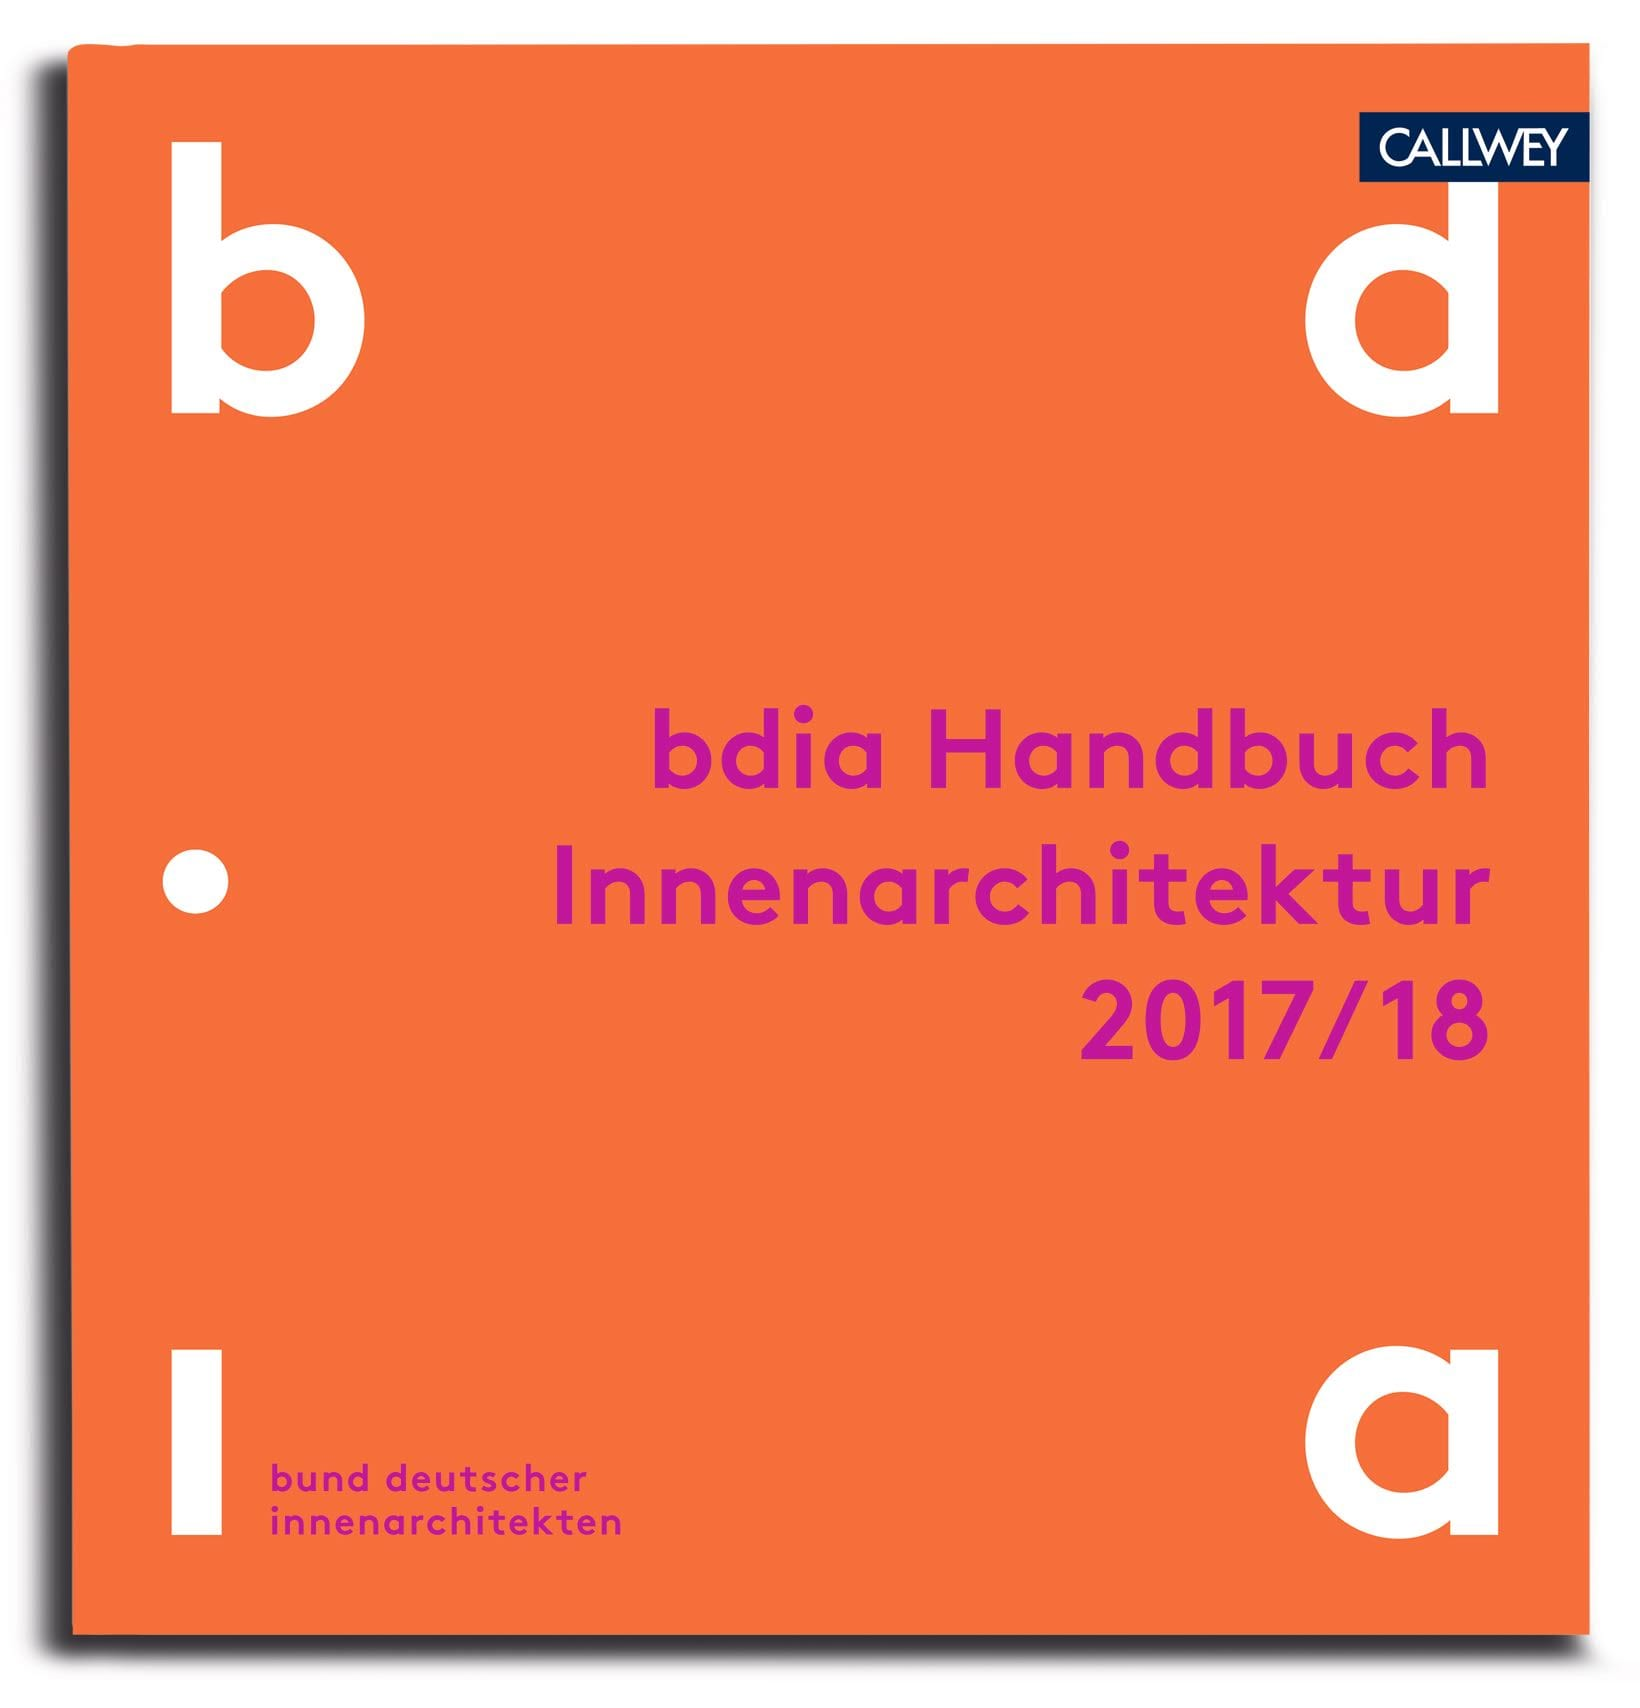 das handbuch innenarchitektur 2017 18 des bdia ist erschienen. Black Bedroom Furniture Sets. Home Design Ideas